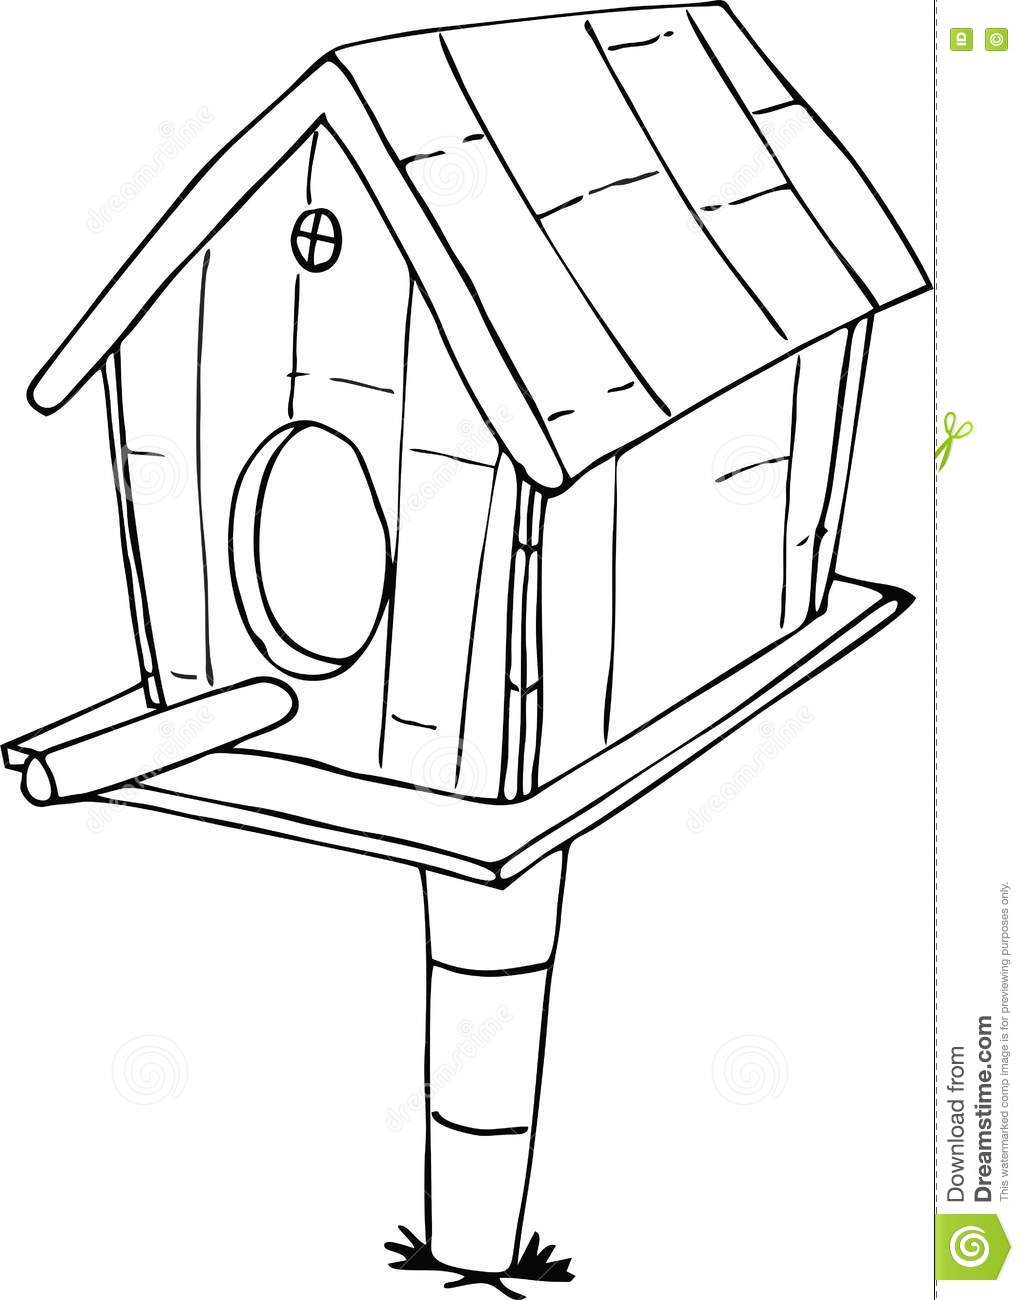 Royalty Free Vector Download Doodle Bird House